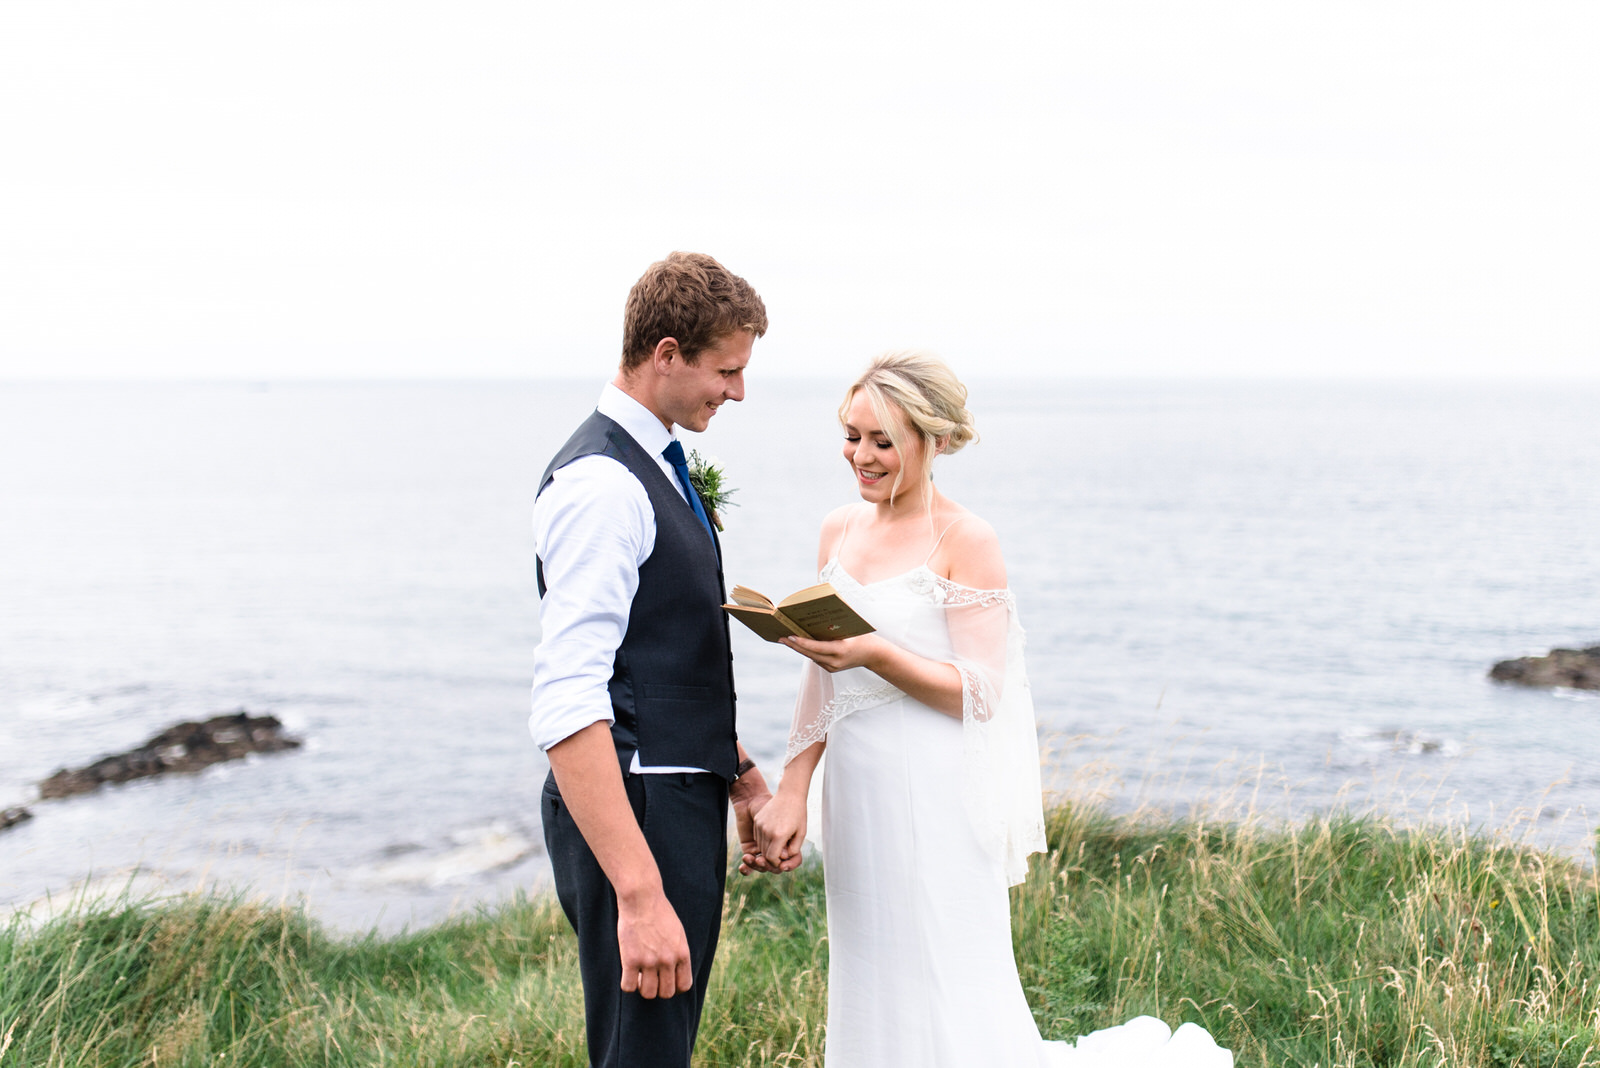 dunluce castle elopement in ireland in sage and white (25)-1.jpg